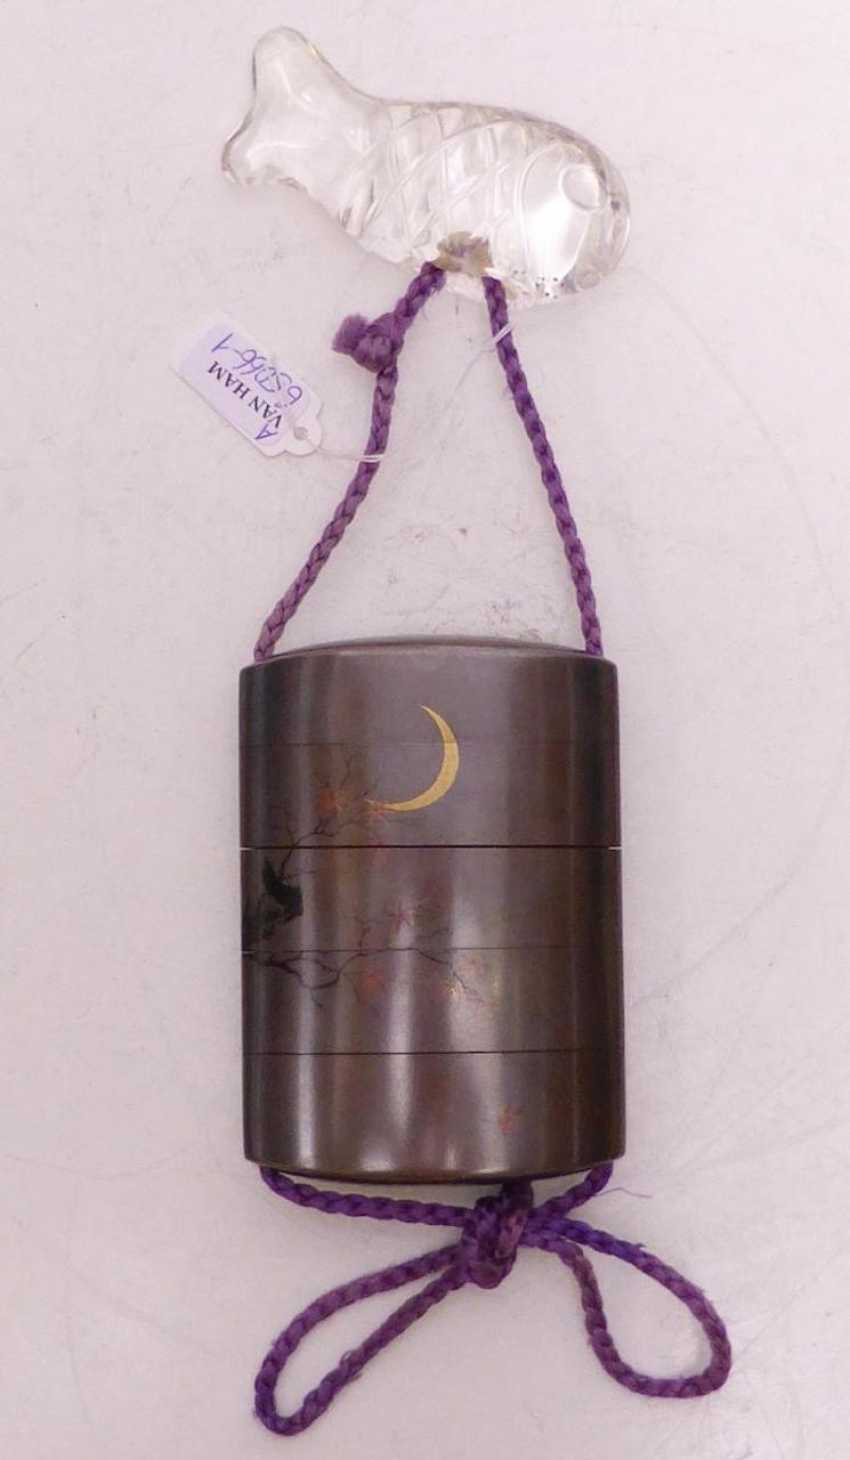 Inrô with Raven, Crescent moon, and maple - photo 3